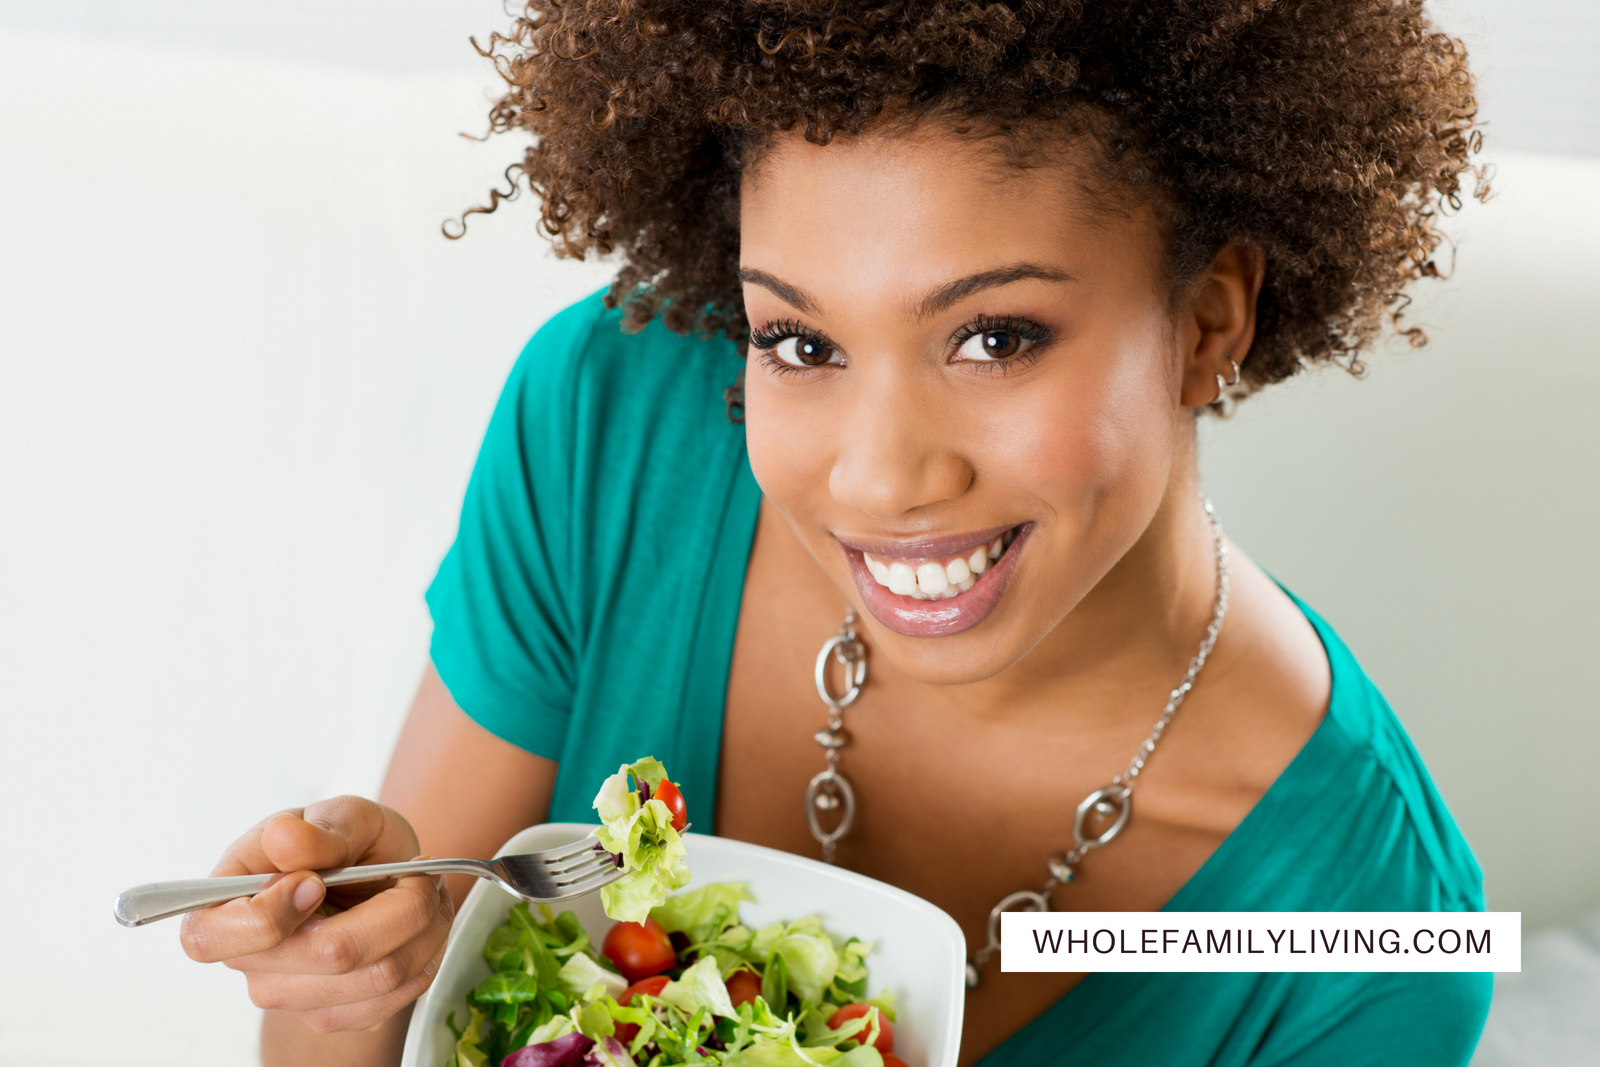 Tips to Start a Mindful Eating Practice. Attractive African-American woman with natural hair eating a healthy salad.